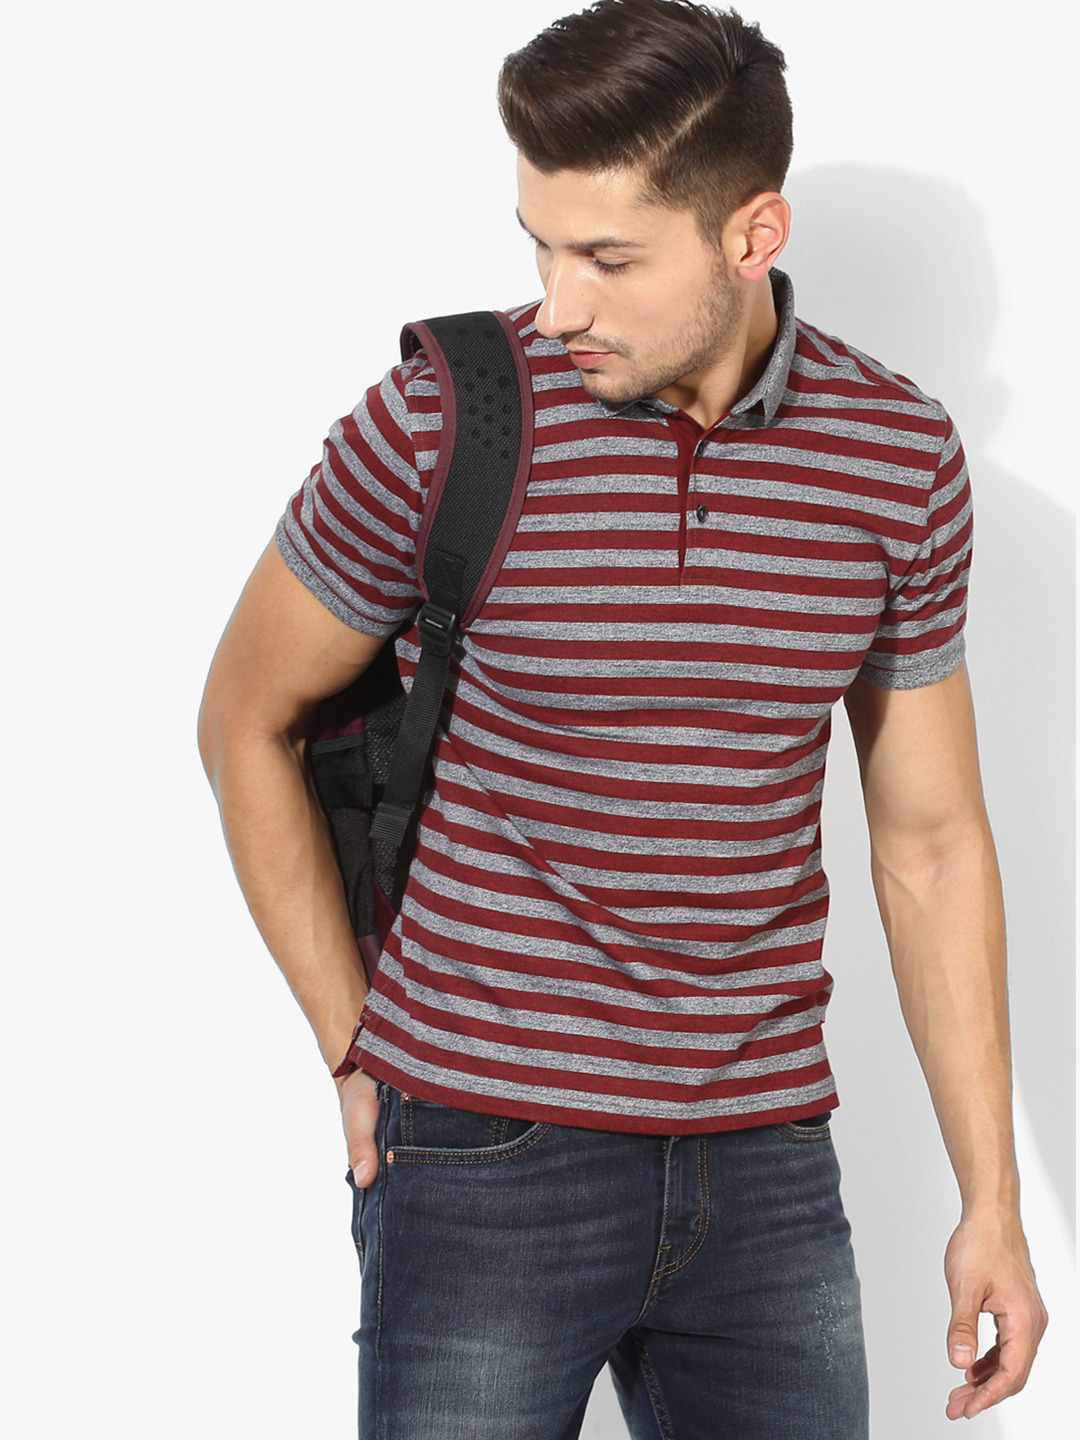 Levis maroon and grey cotton polo t shirt g3 mts5366 for Maroon t shirt for men